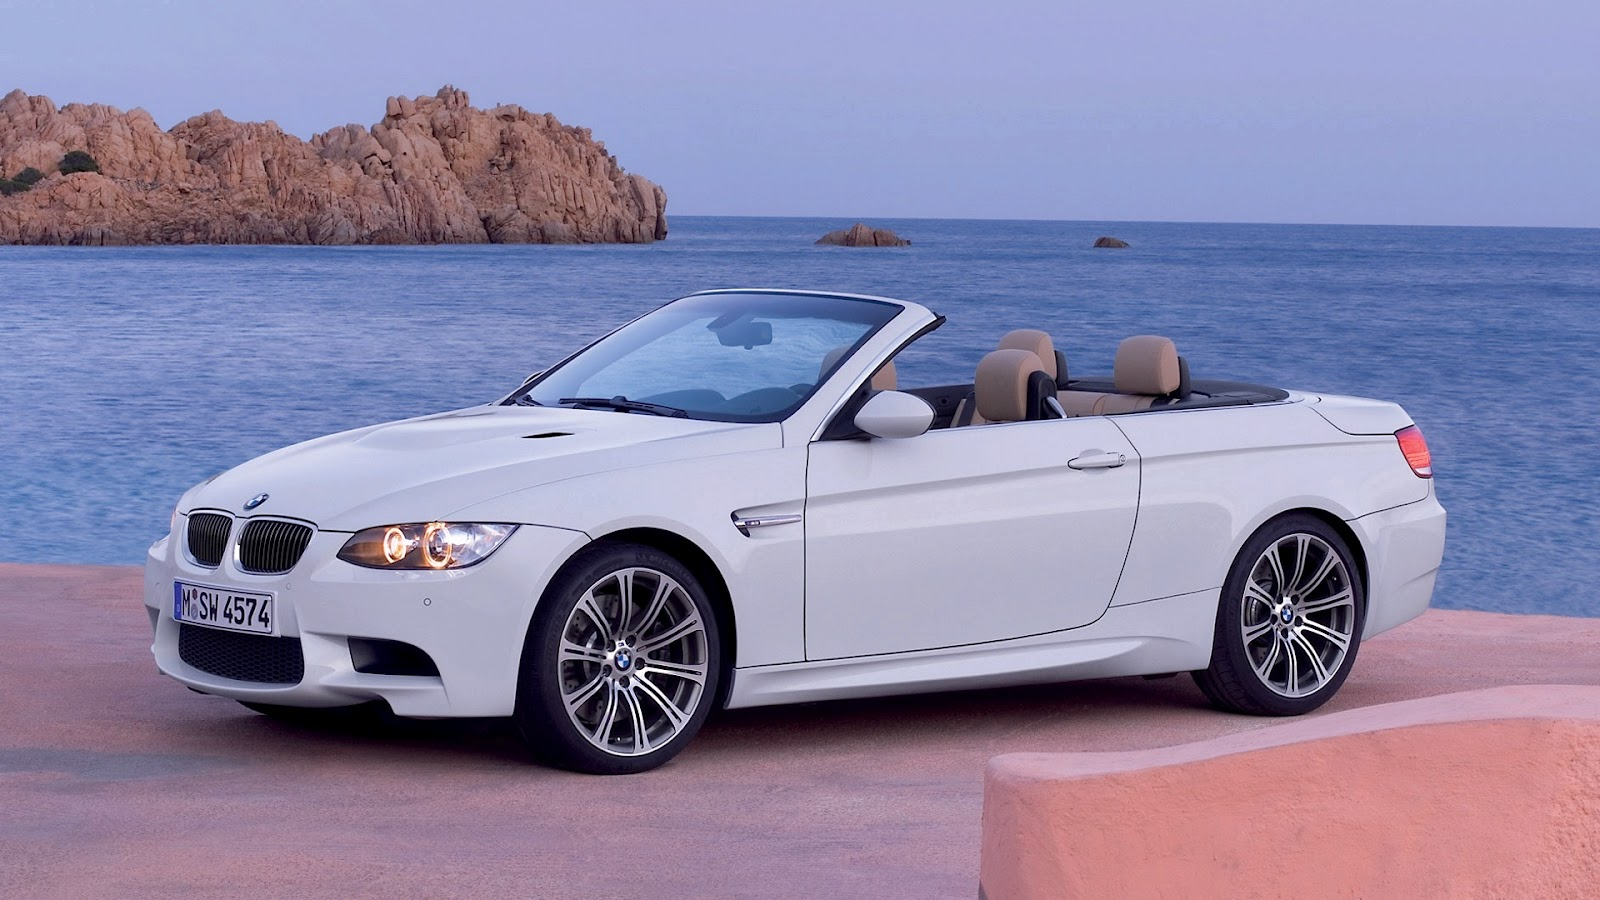 Bmw Car Wallpapers Hd All Hd Wallpapers